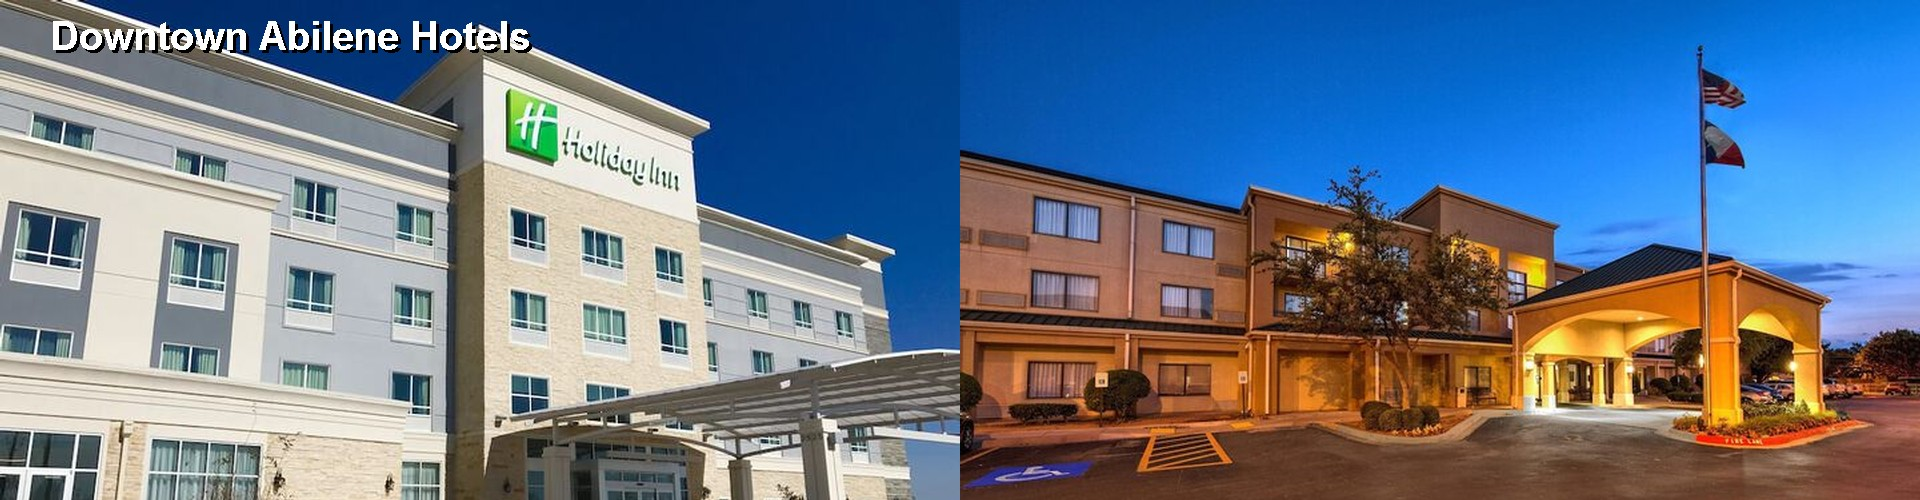 4 Best Hotels near Downtown Abilene